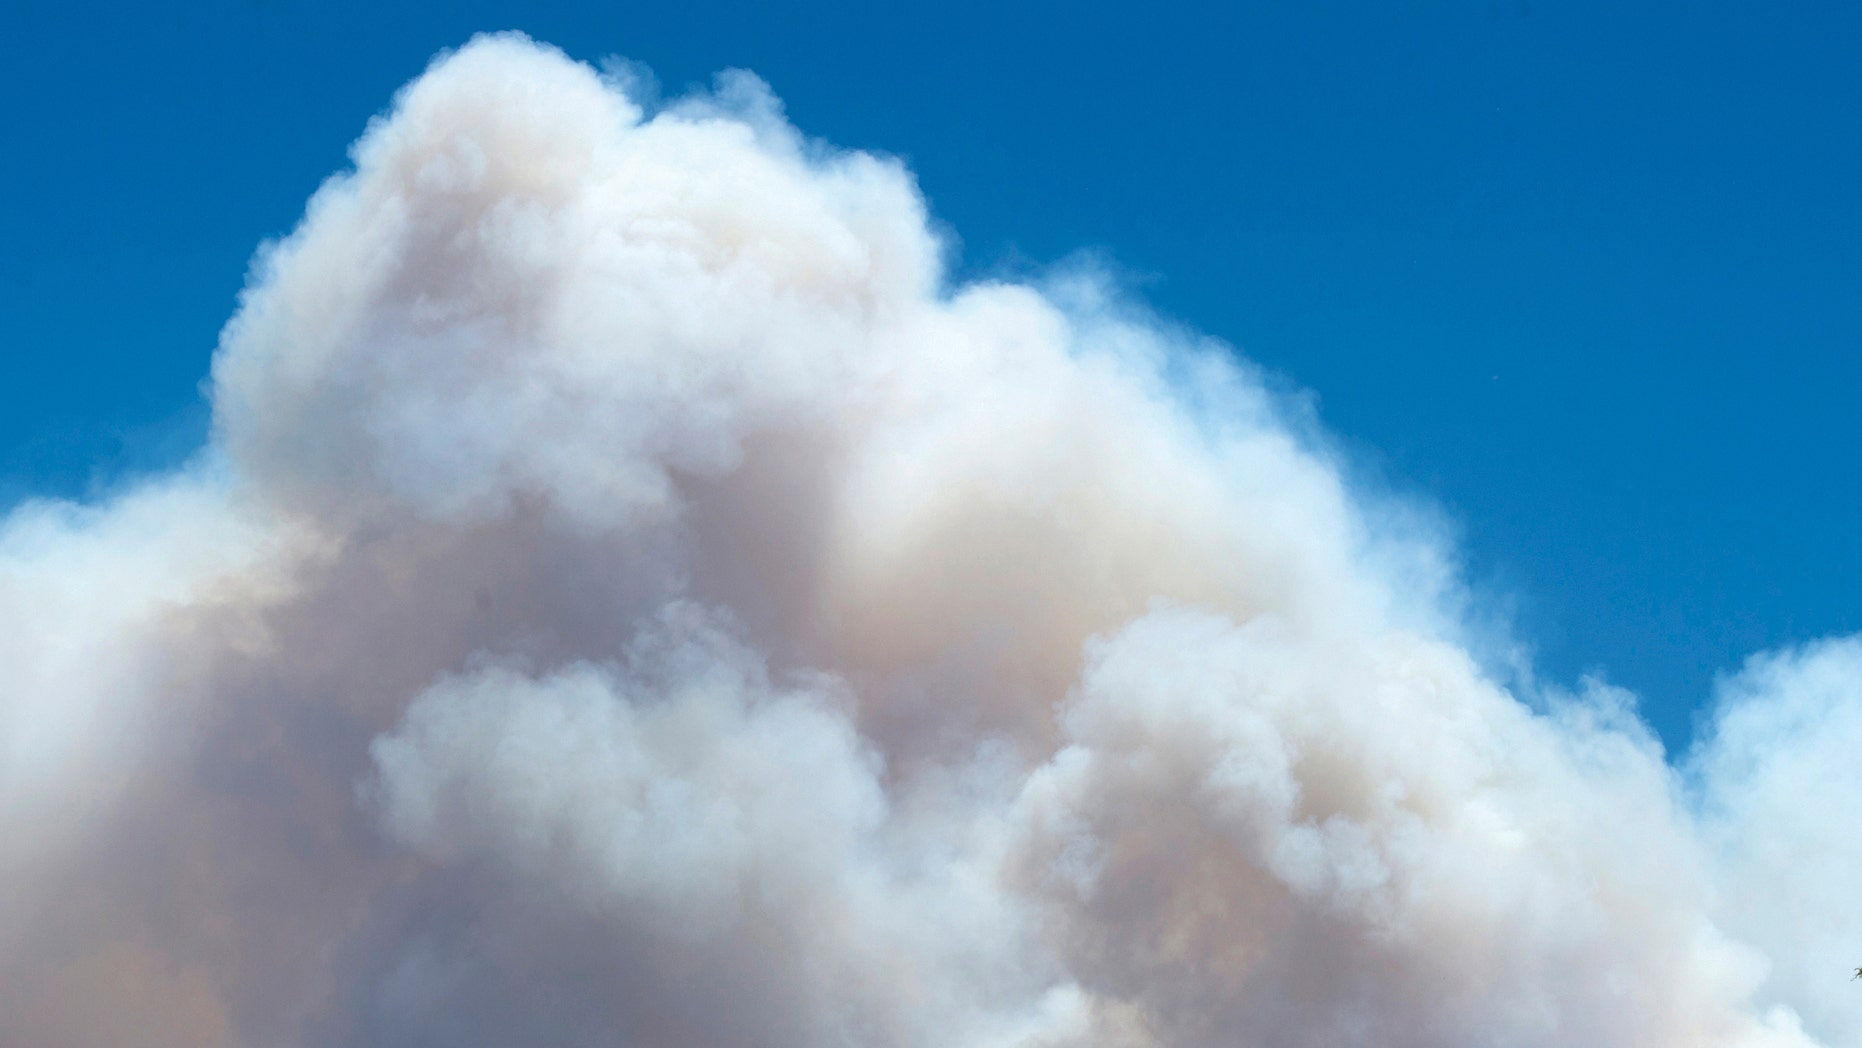 June 20, 2013: The smoke plume from the East Peak fire billows up behind a home on County Road 360 in La Veta, Colo.